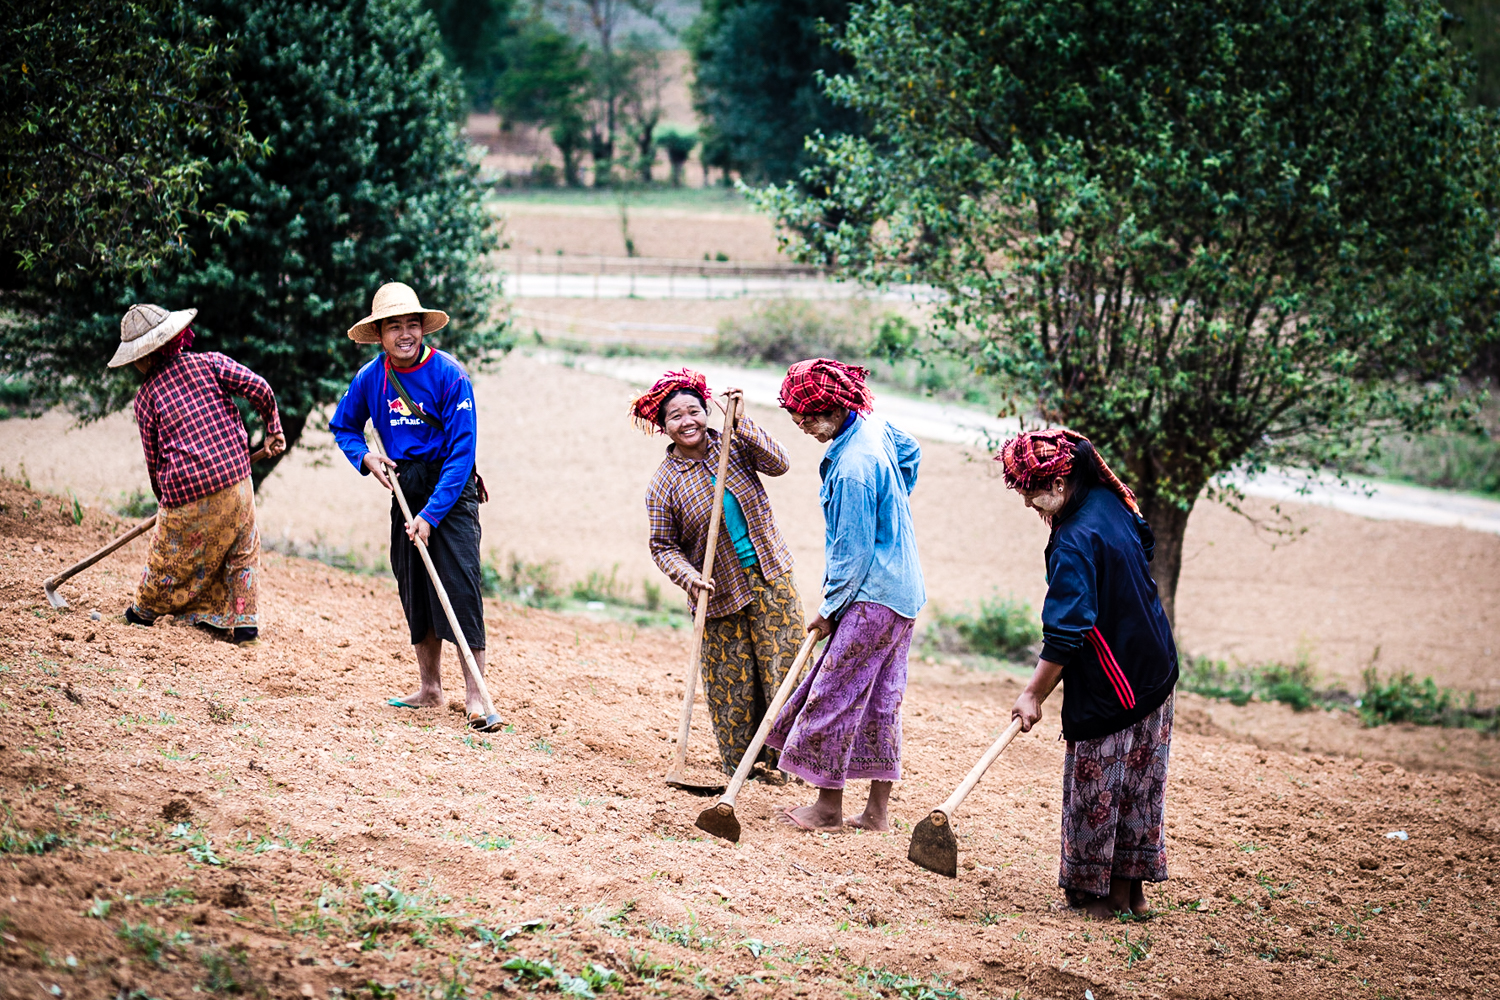 It appeared as if the women did most of the agricultural labor. They seemed to be having a good time though, chatting to one another as they worked.